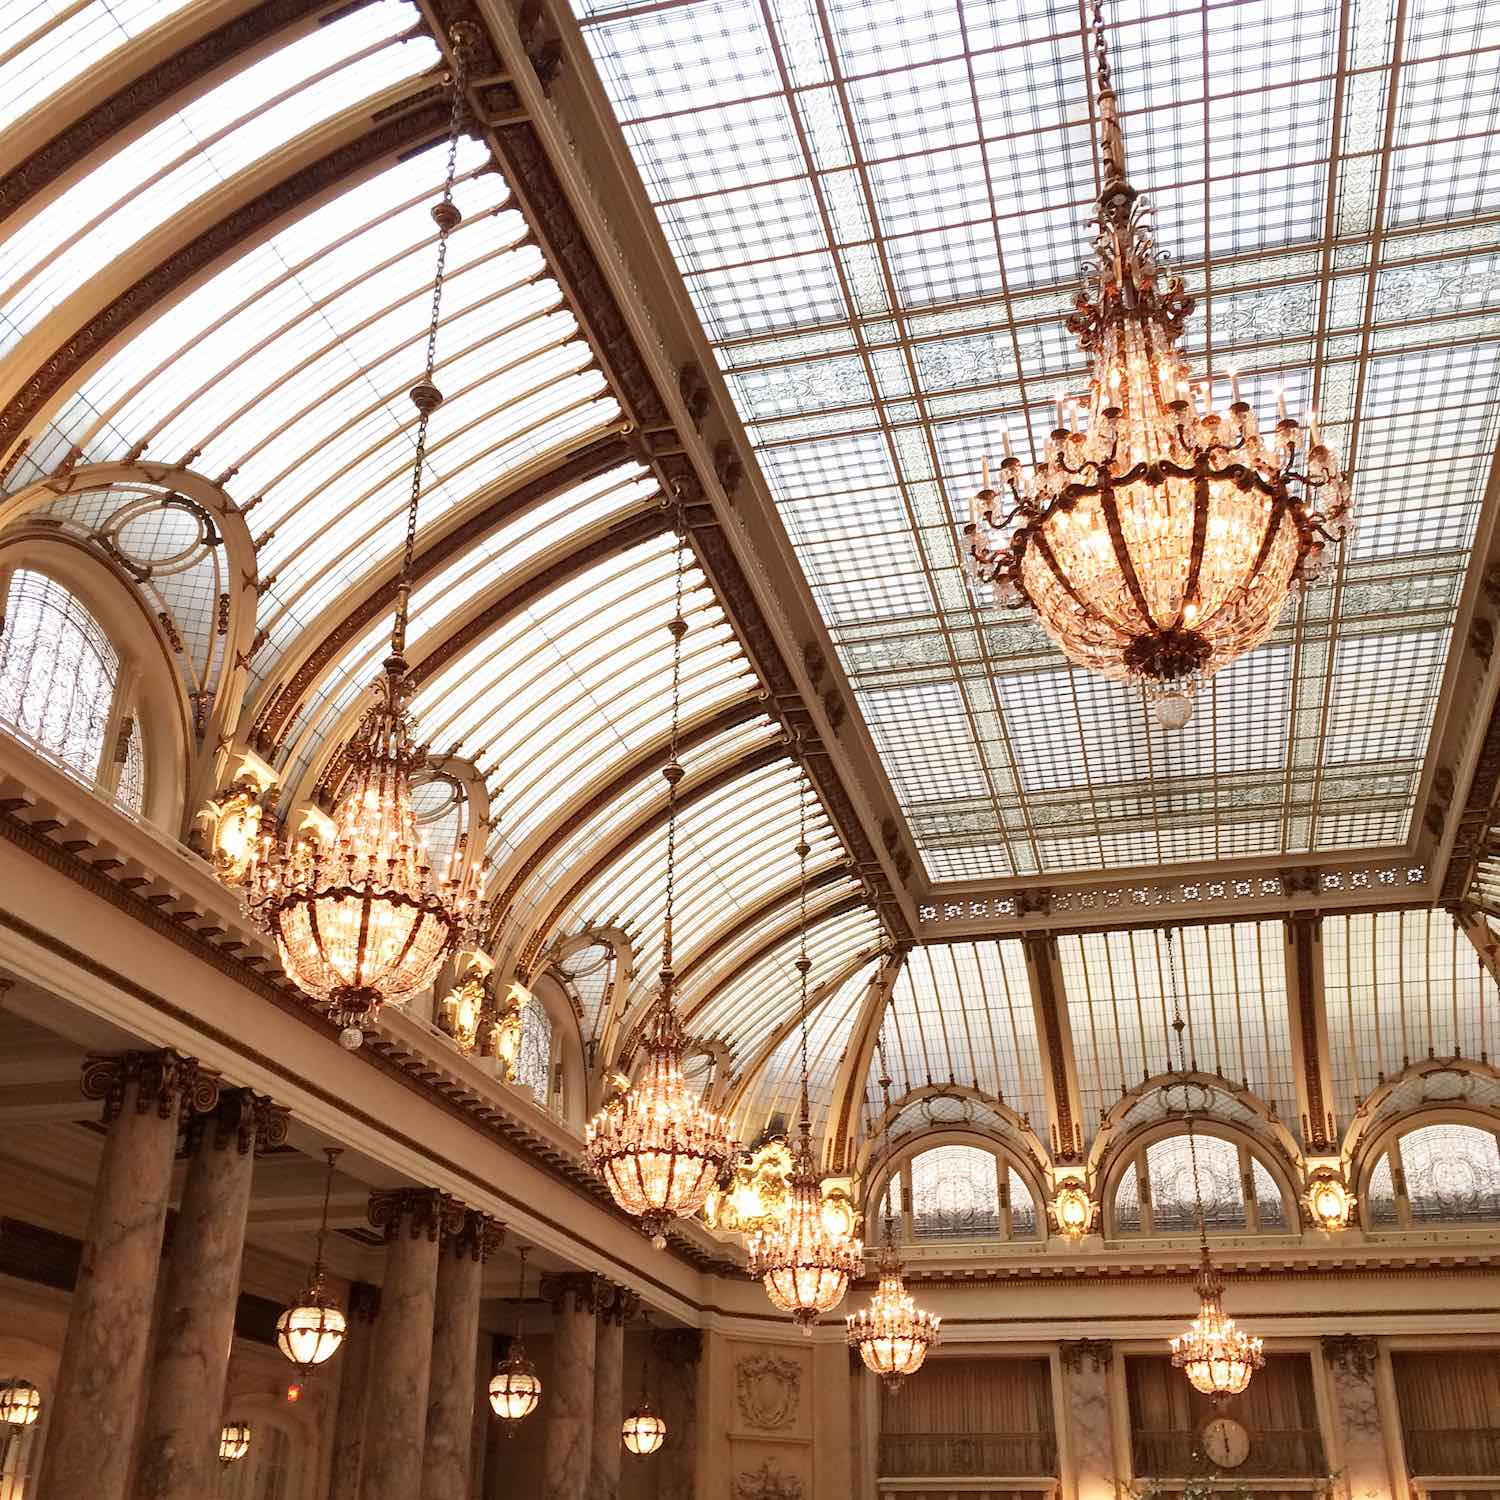 Most Instagram Worthy Spots in San Francisco - Palace Hotel